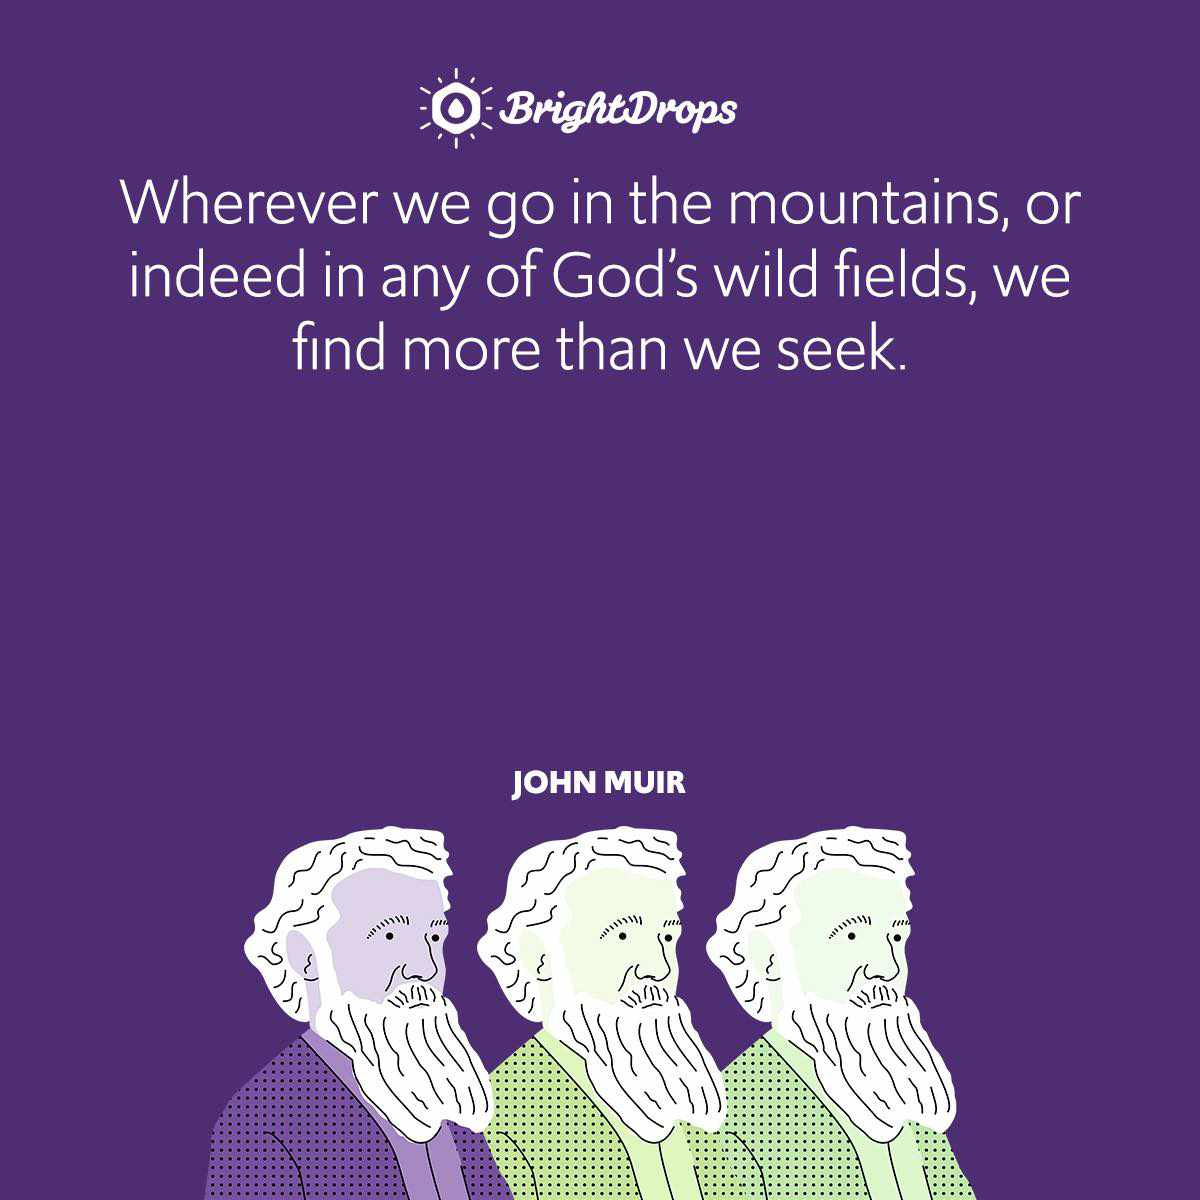 Wherever we go in the mountains, or indeed in any of God's wild fields, we find more than we seek.